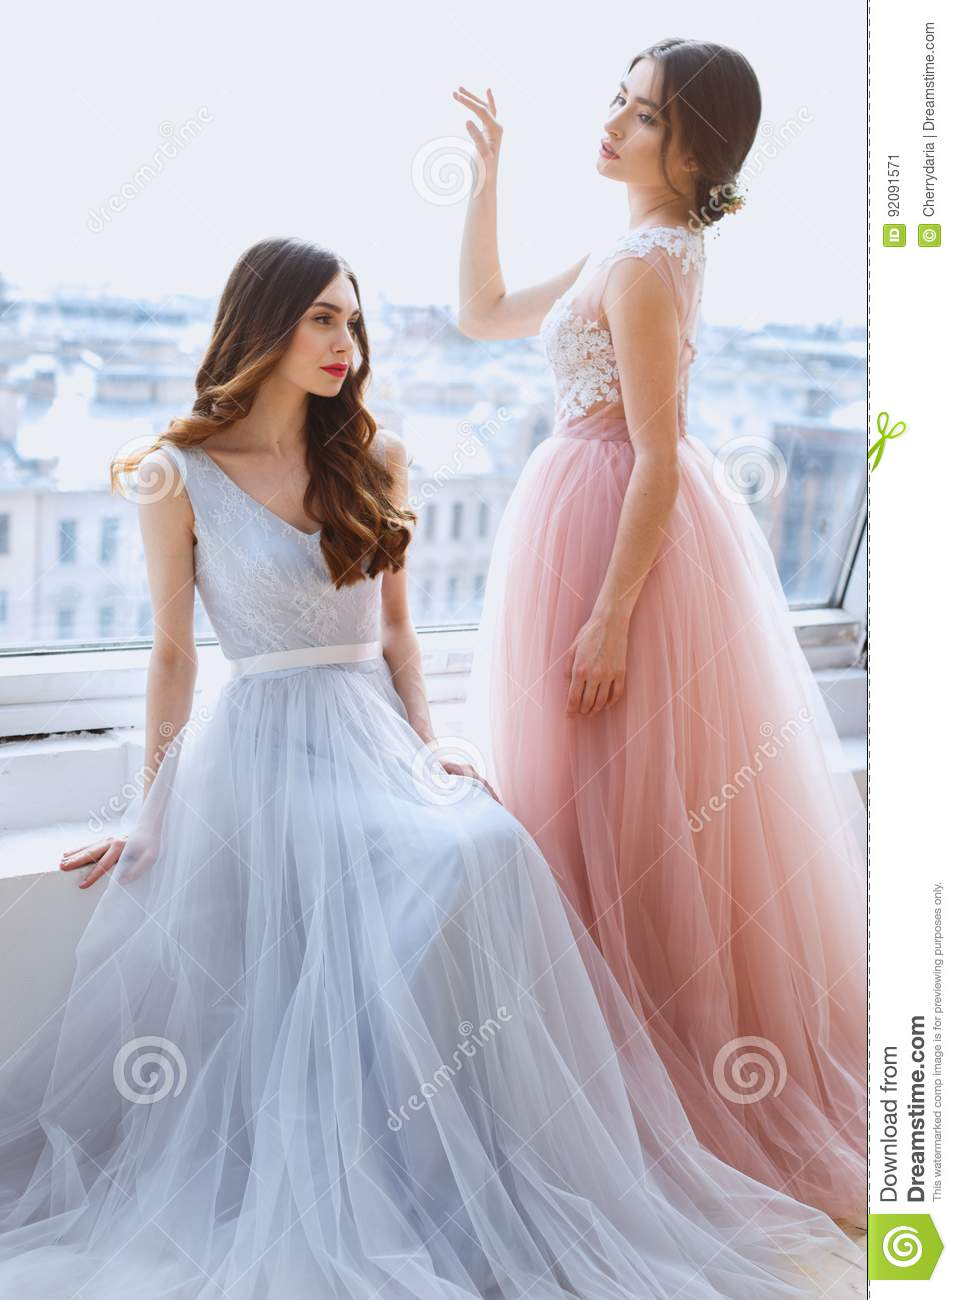 Two Brides In A Tender Light Pink And Blue Wedding Dresses In A